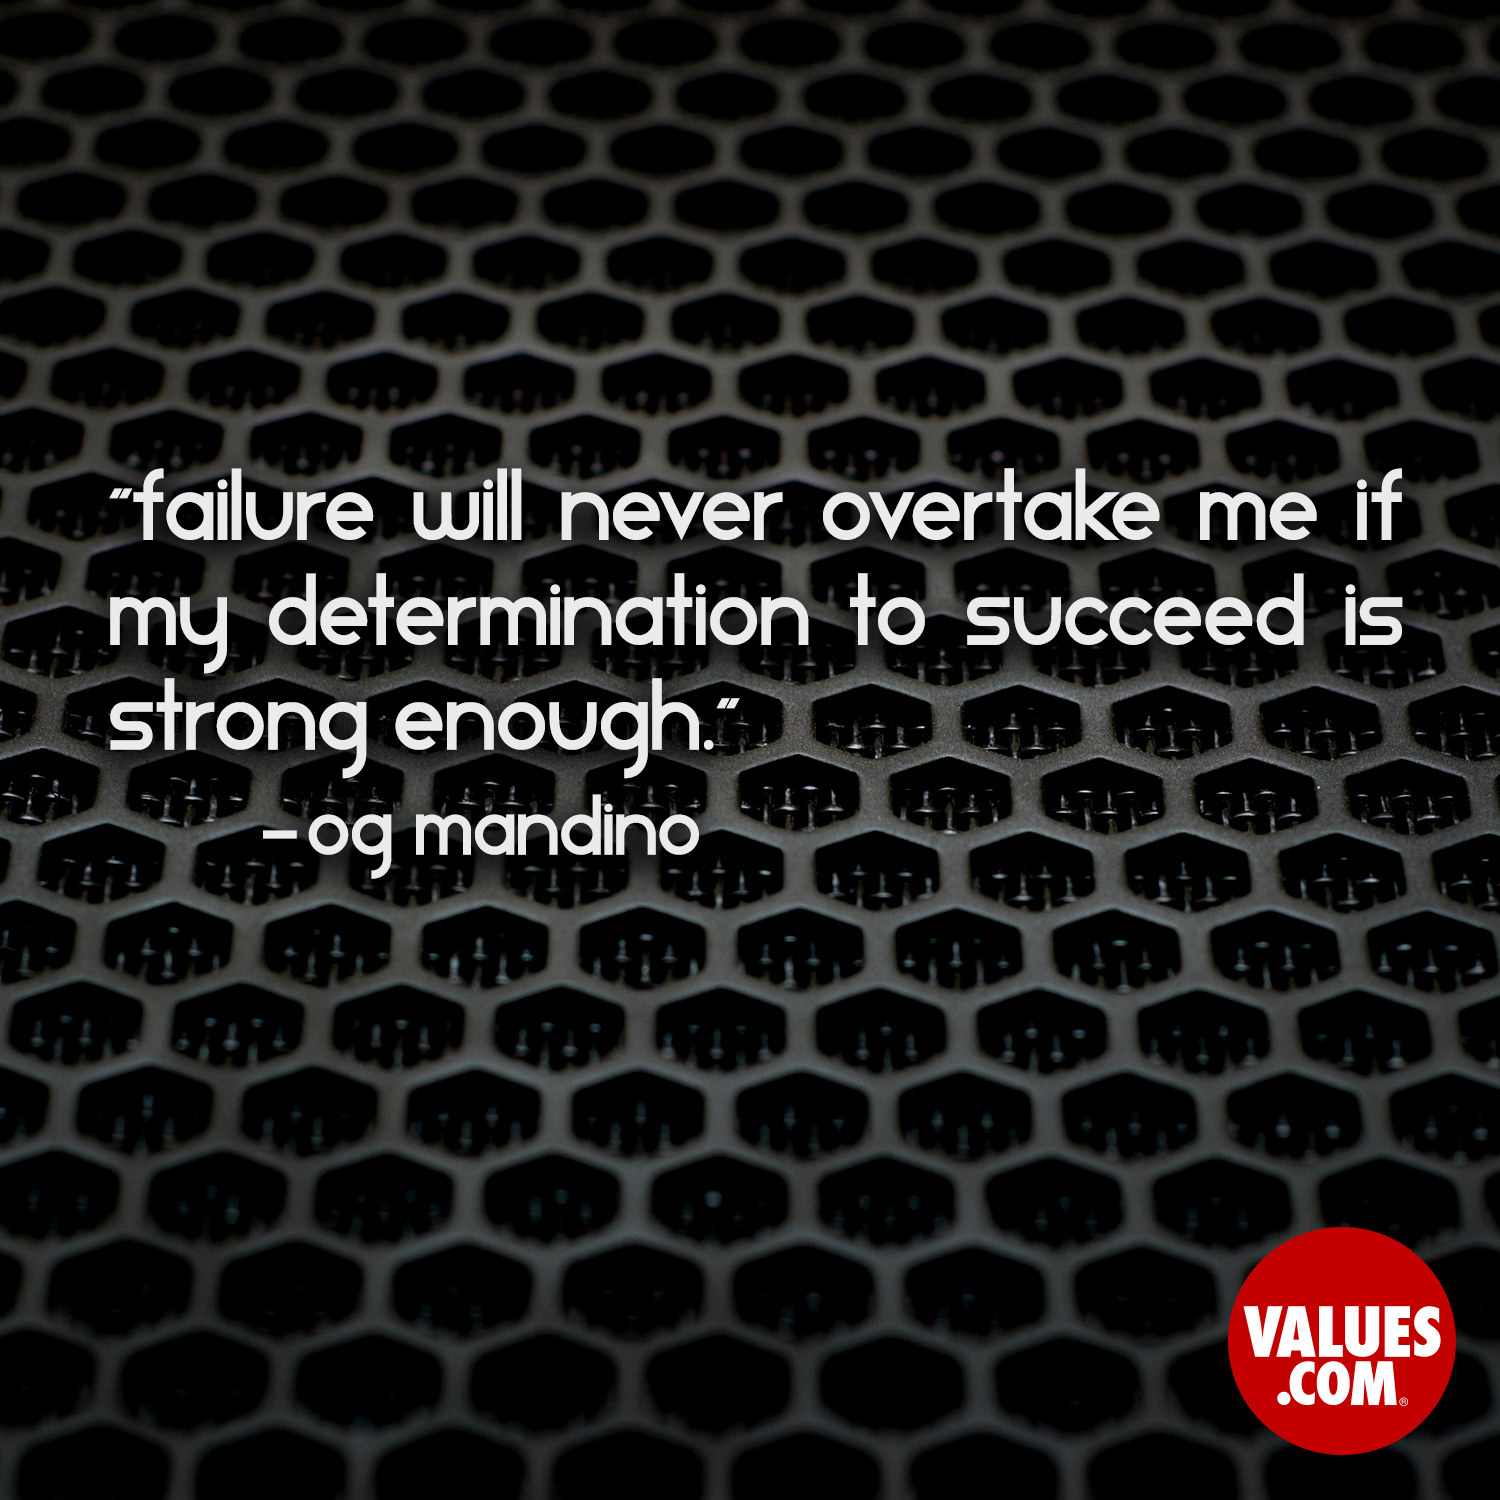 Failure will never overtake me if my determination to succeed is strong enough. —Og Mandino